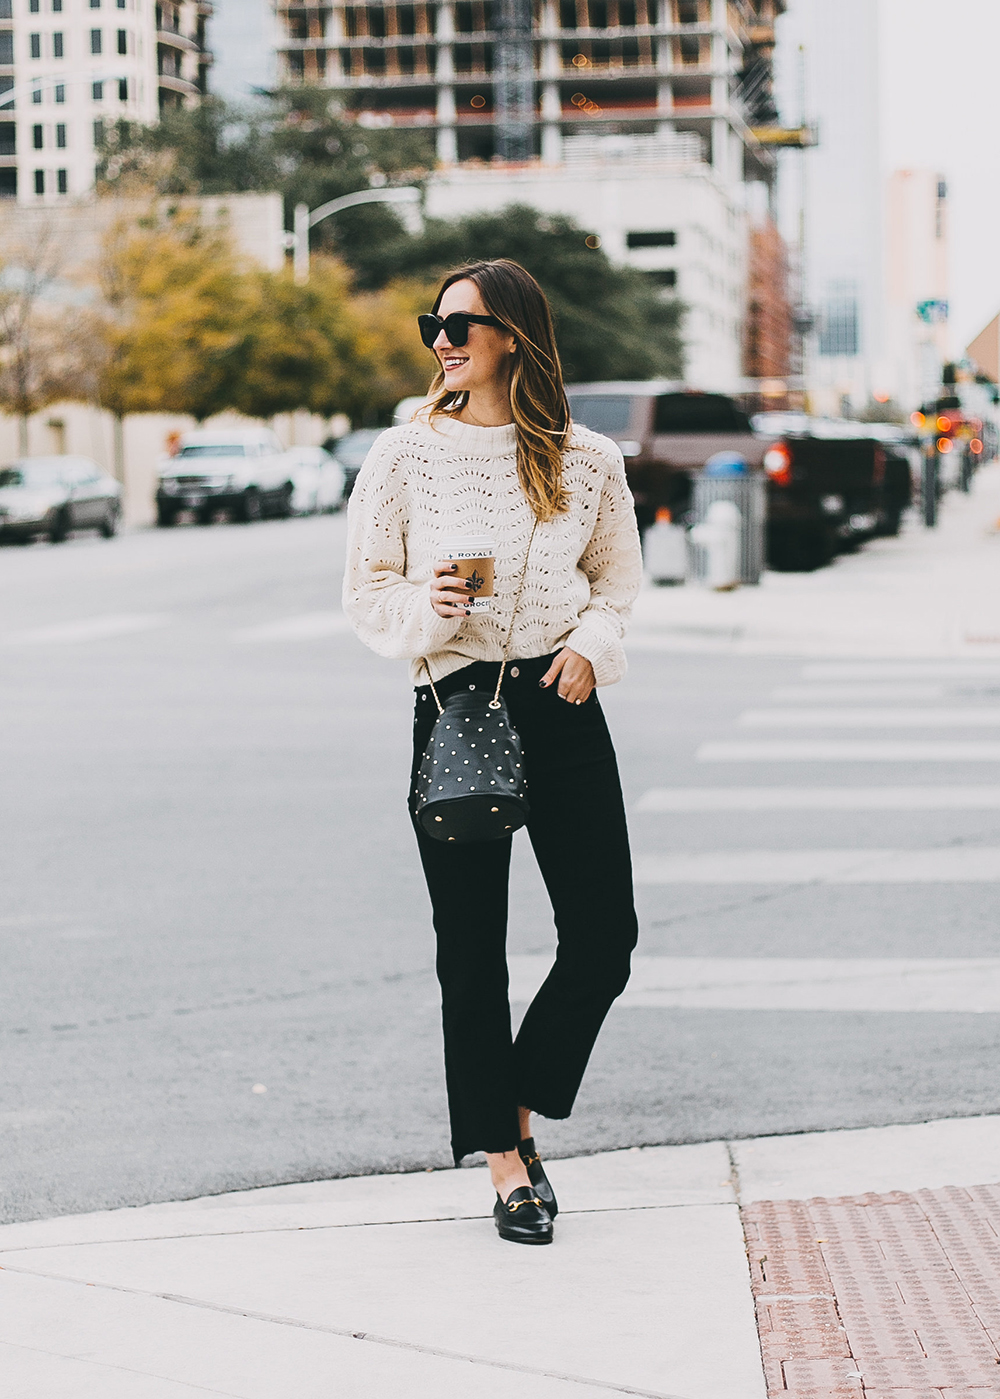 livvyland-blog-olivia-watson-austin-texas-fashion-blogger-white-knit-sweater-rag-bone-crop-flare-black-jeans-gucci-loafers-8